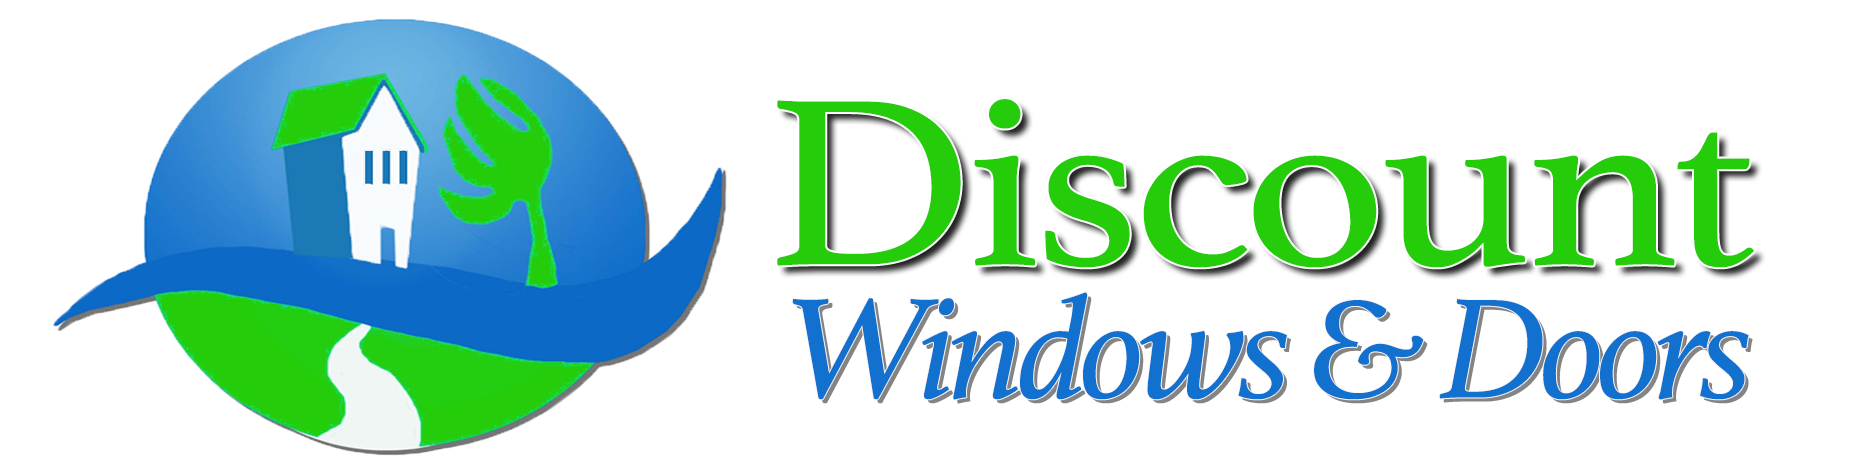 Jalousien Discount.Hawaii Replacement Windows Doors Discount Windows